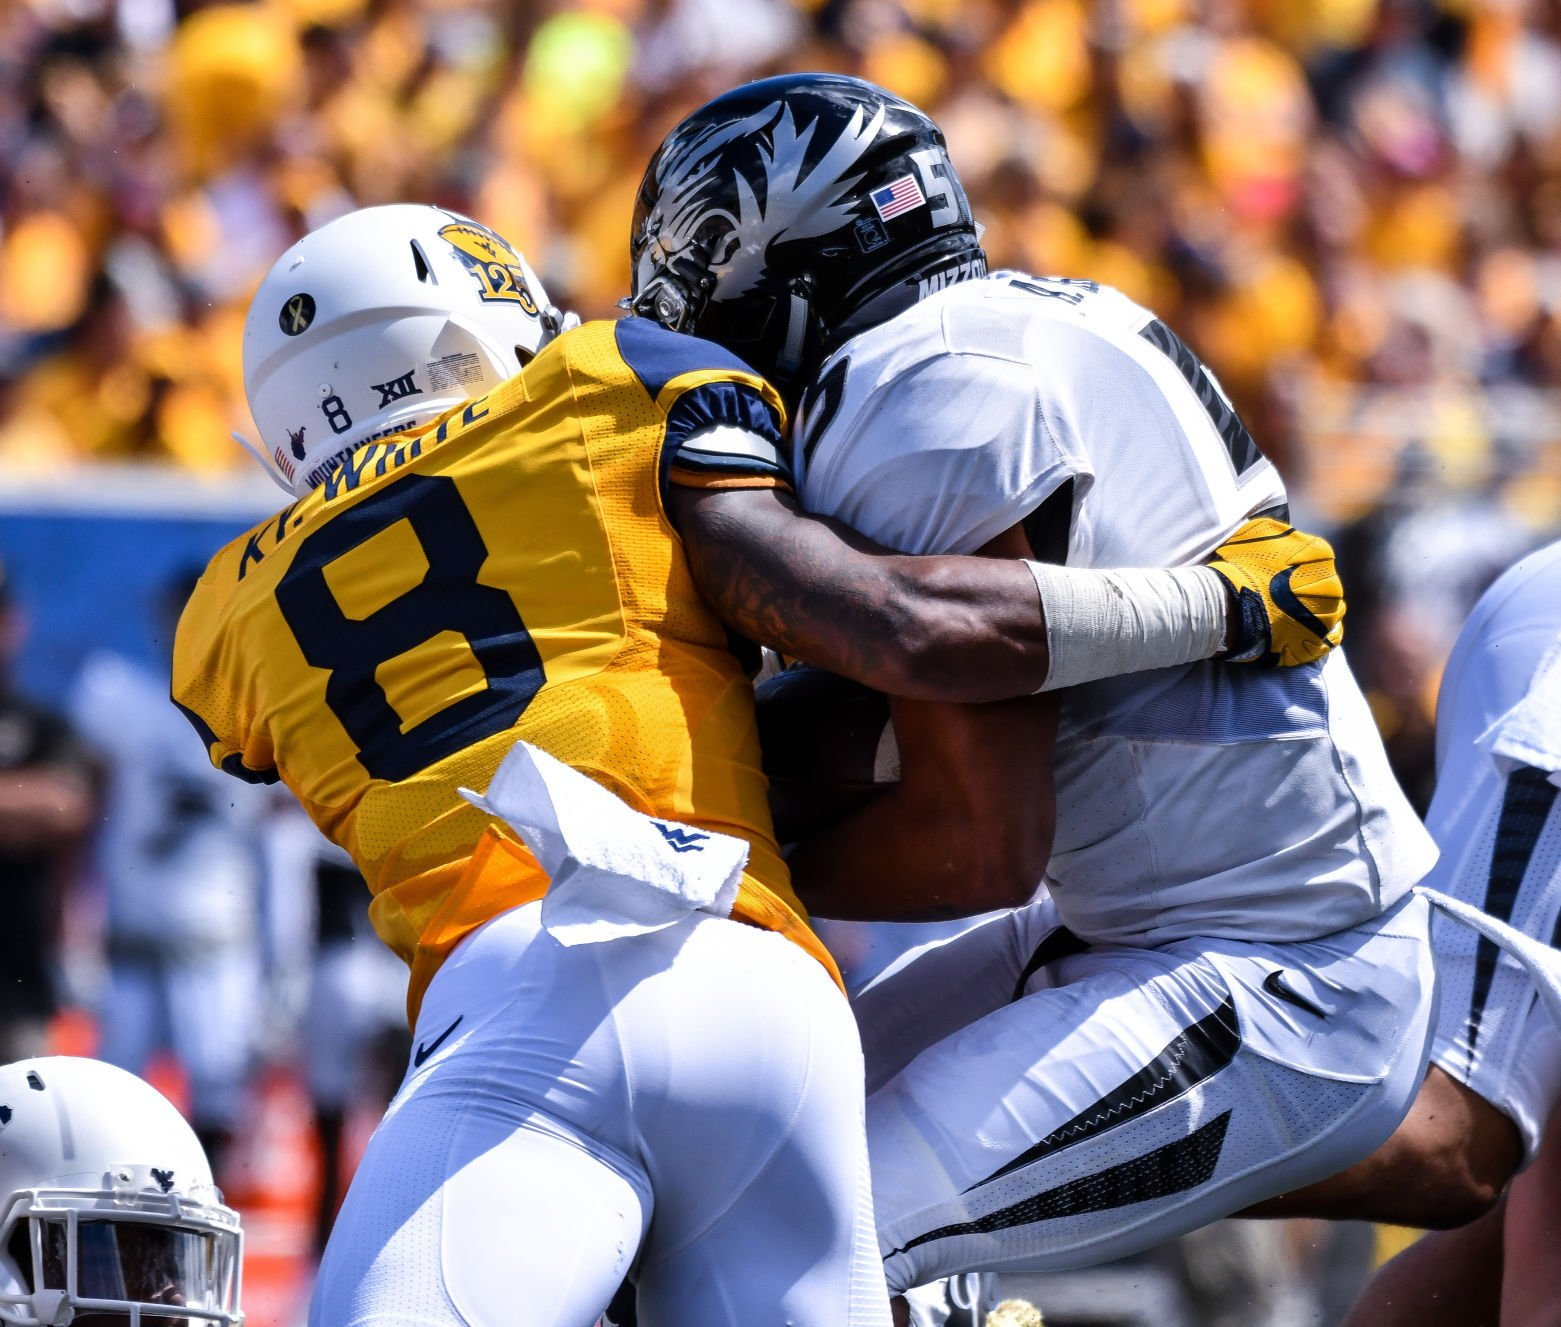 Virginia Tech edges West Virginia 31-24